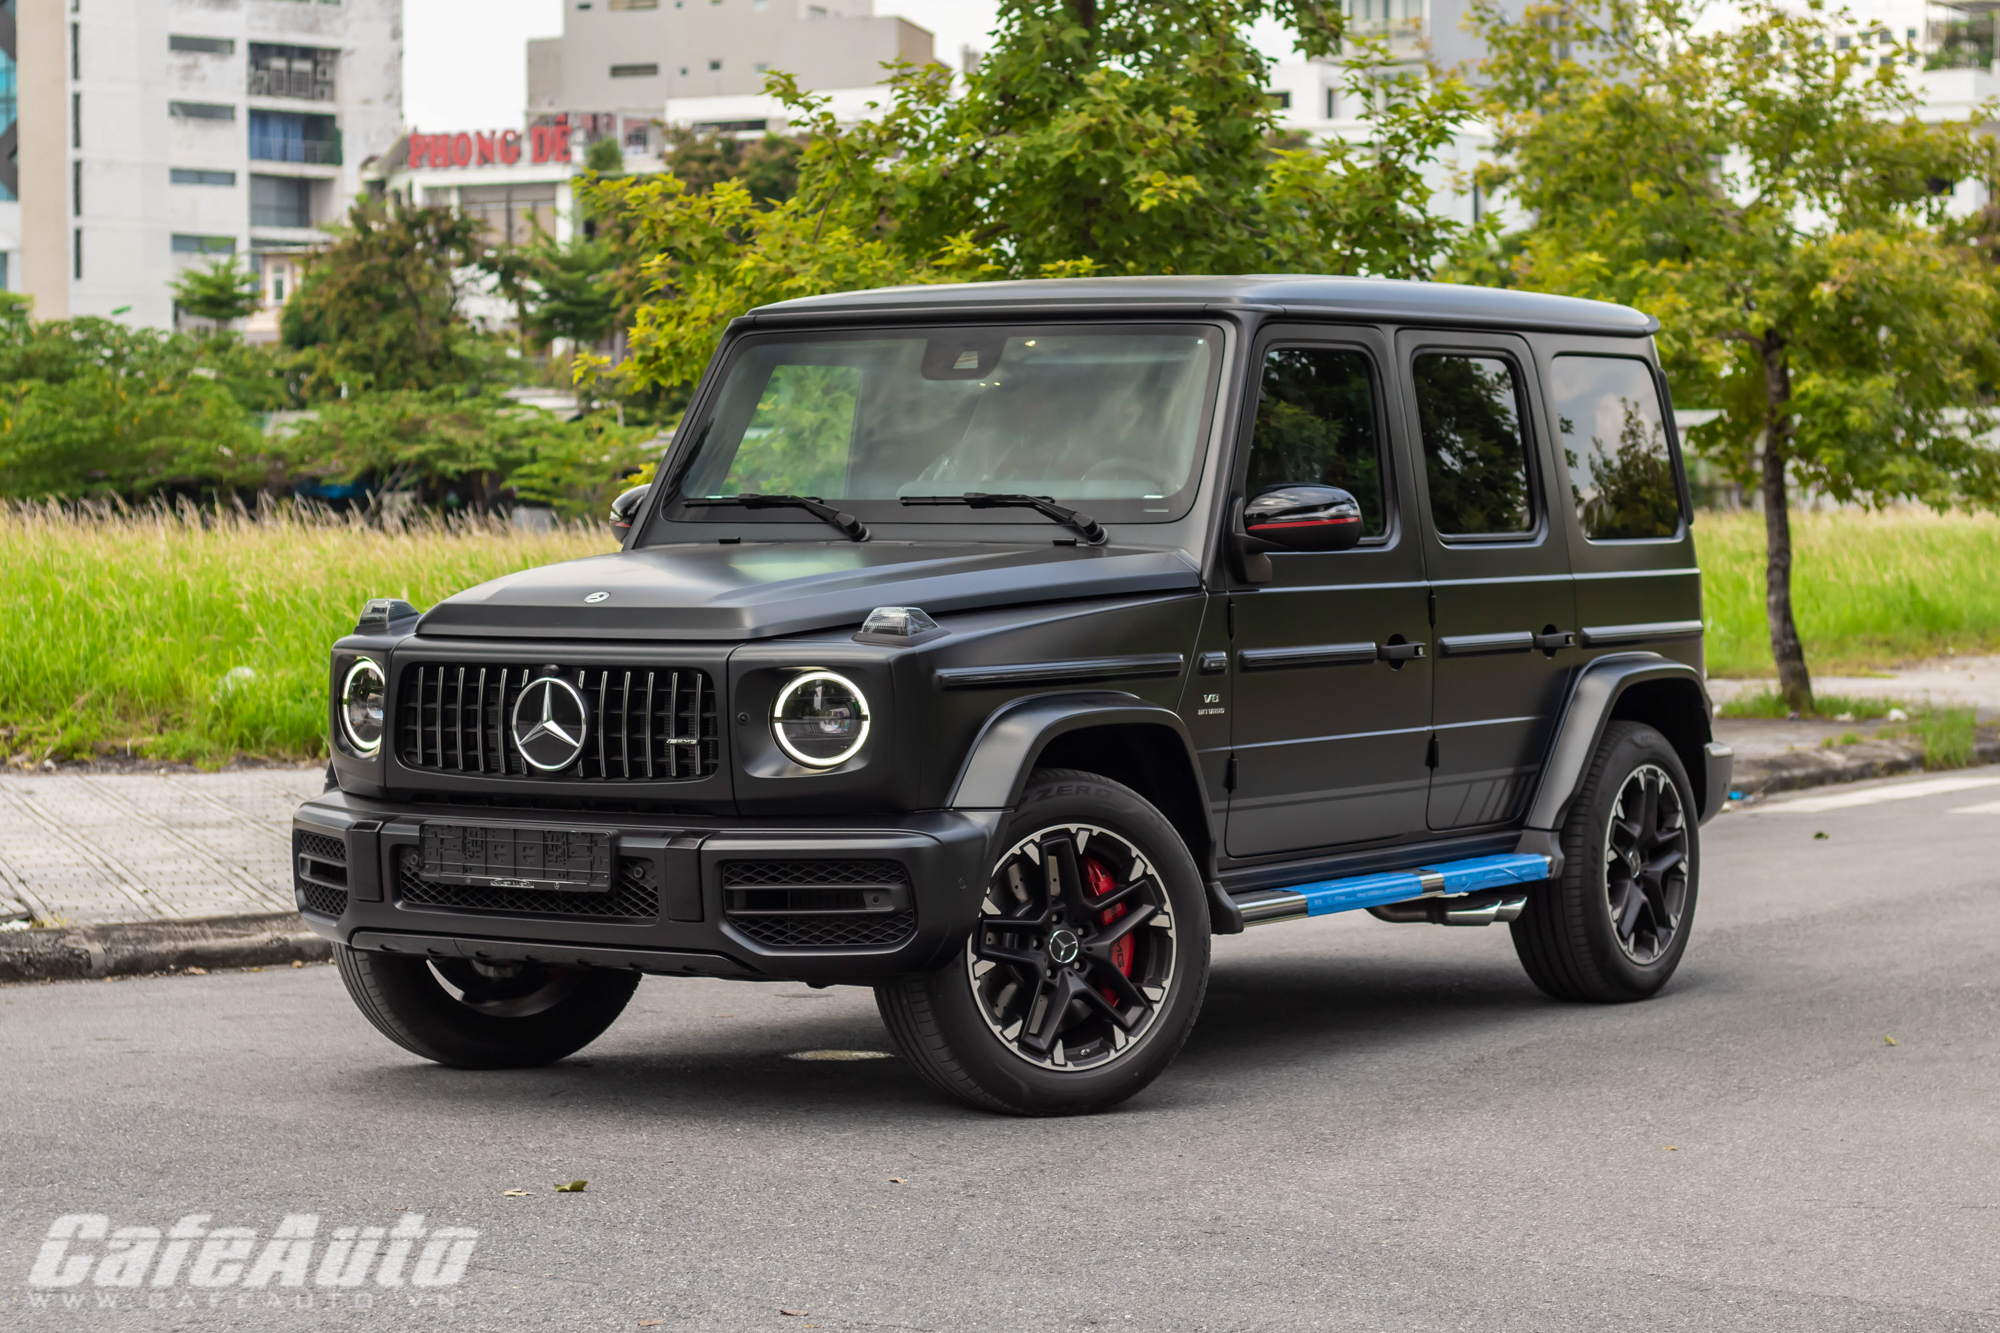 MercedesG63TrailPackage-cafeautovn-21